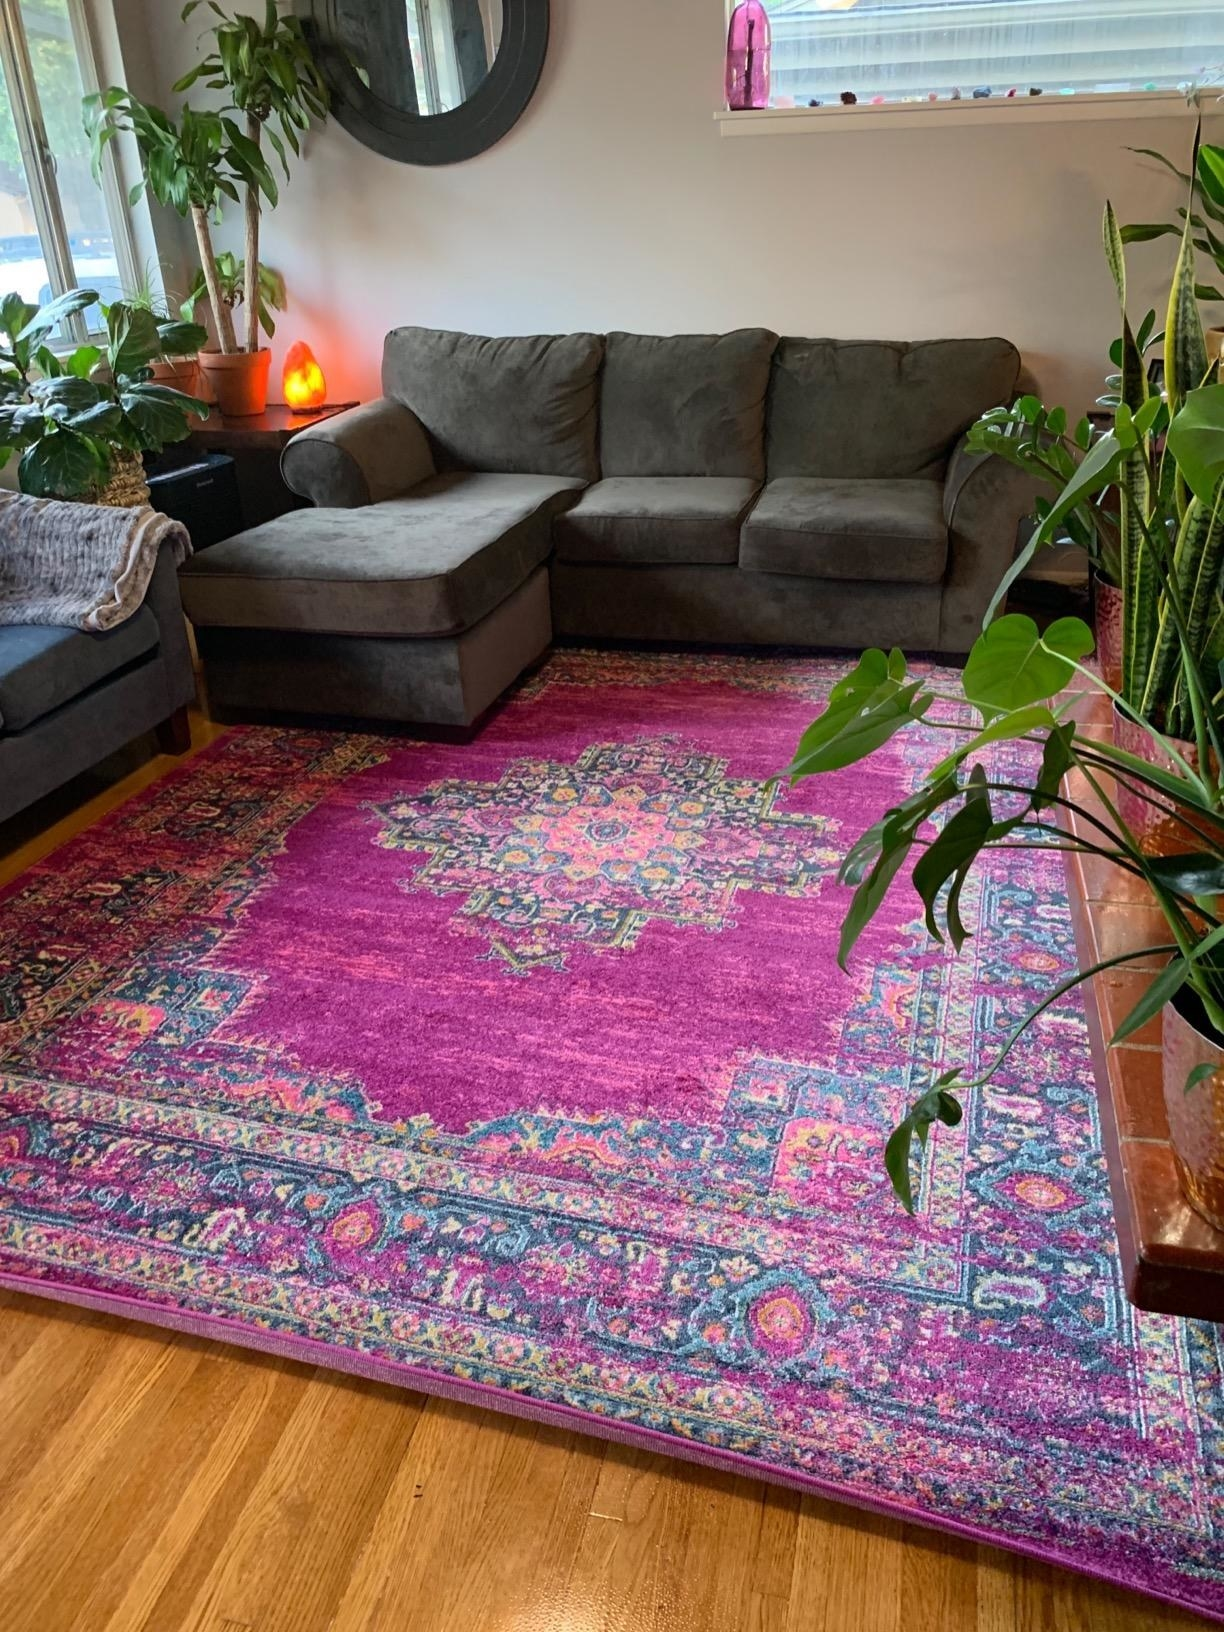 a reviewer's rug in their living room